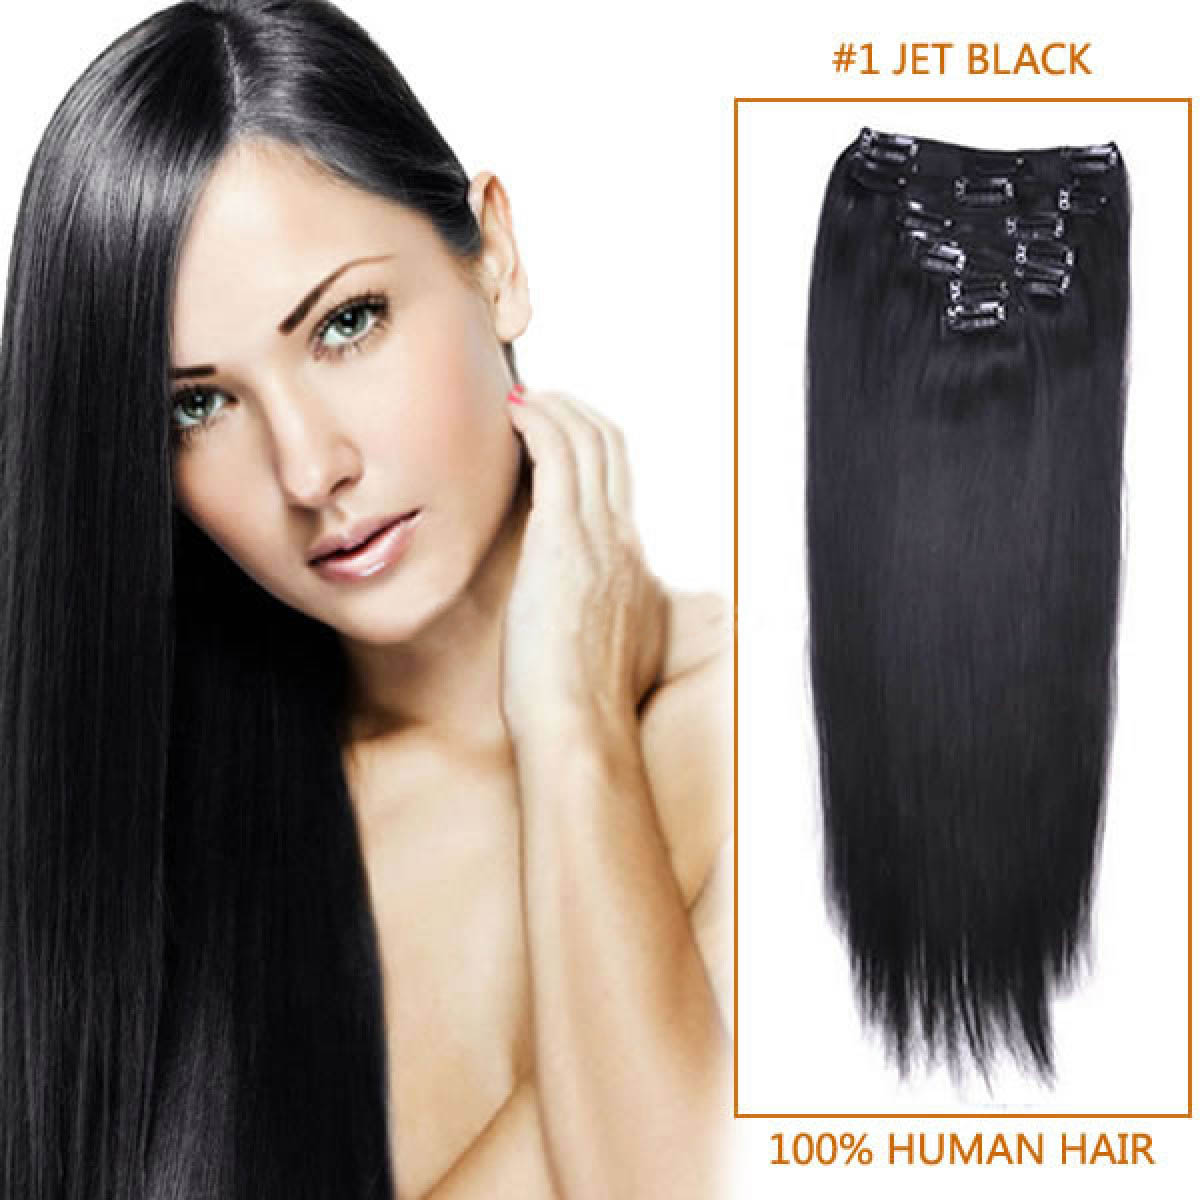 Inch 1 jet black clip in remy human hair extensions 7pcs 22 inch 1 jet black clip in remy human hair extensions 7pcs pmusecretfo Choice Image